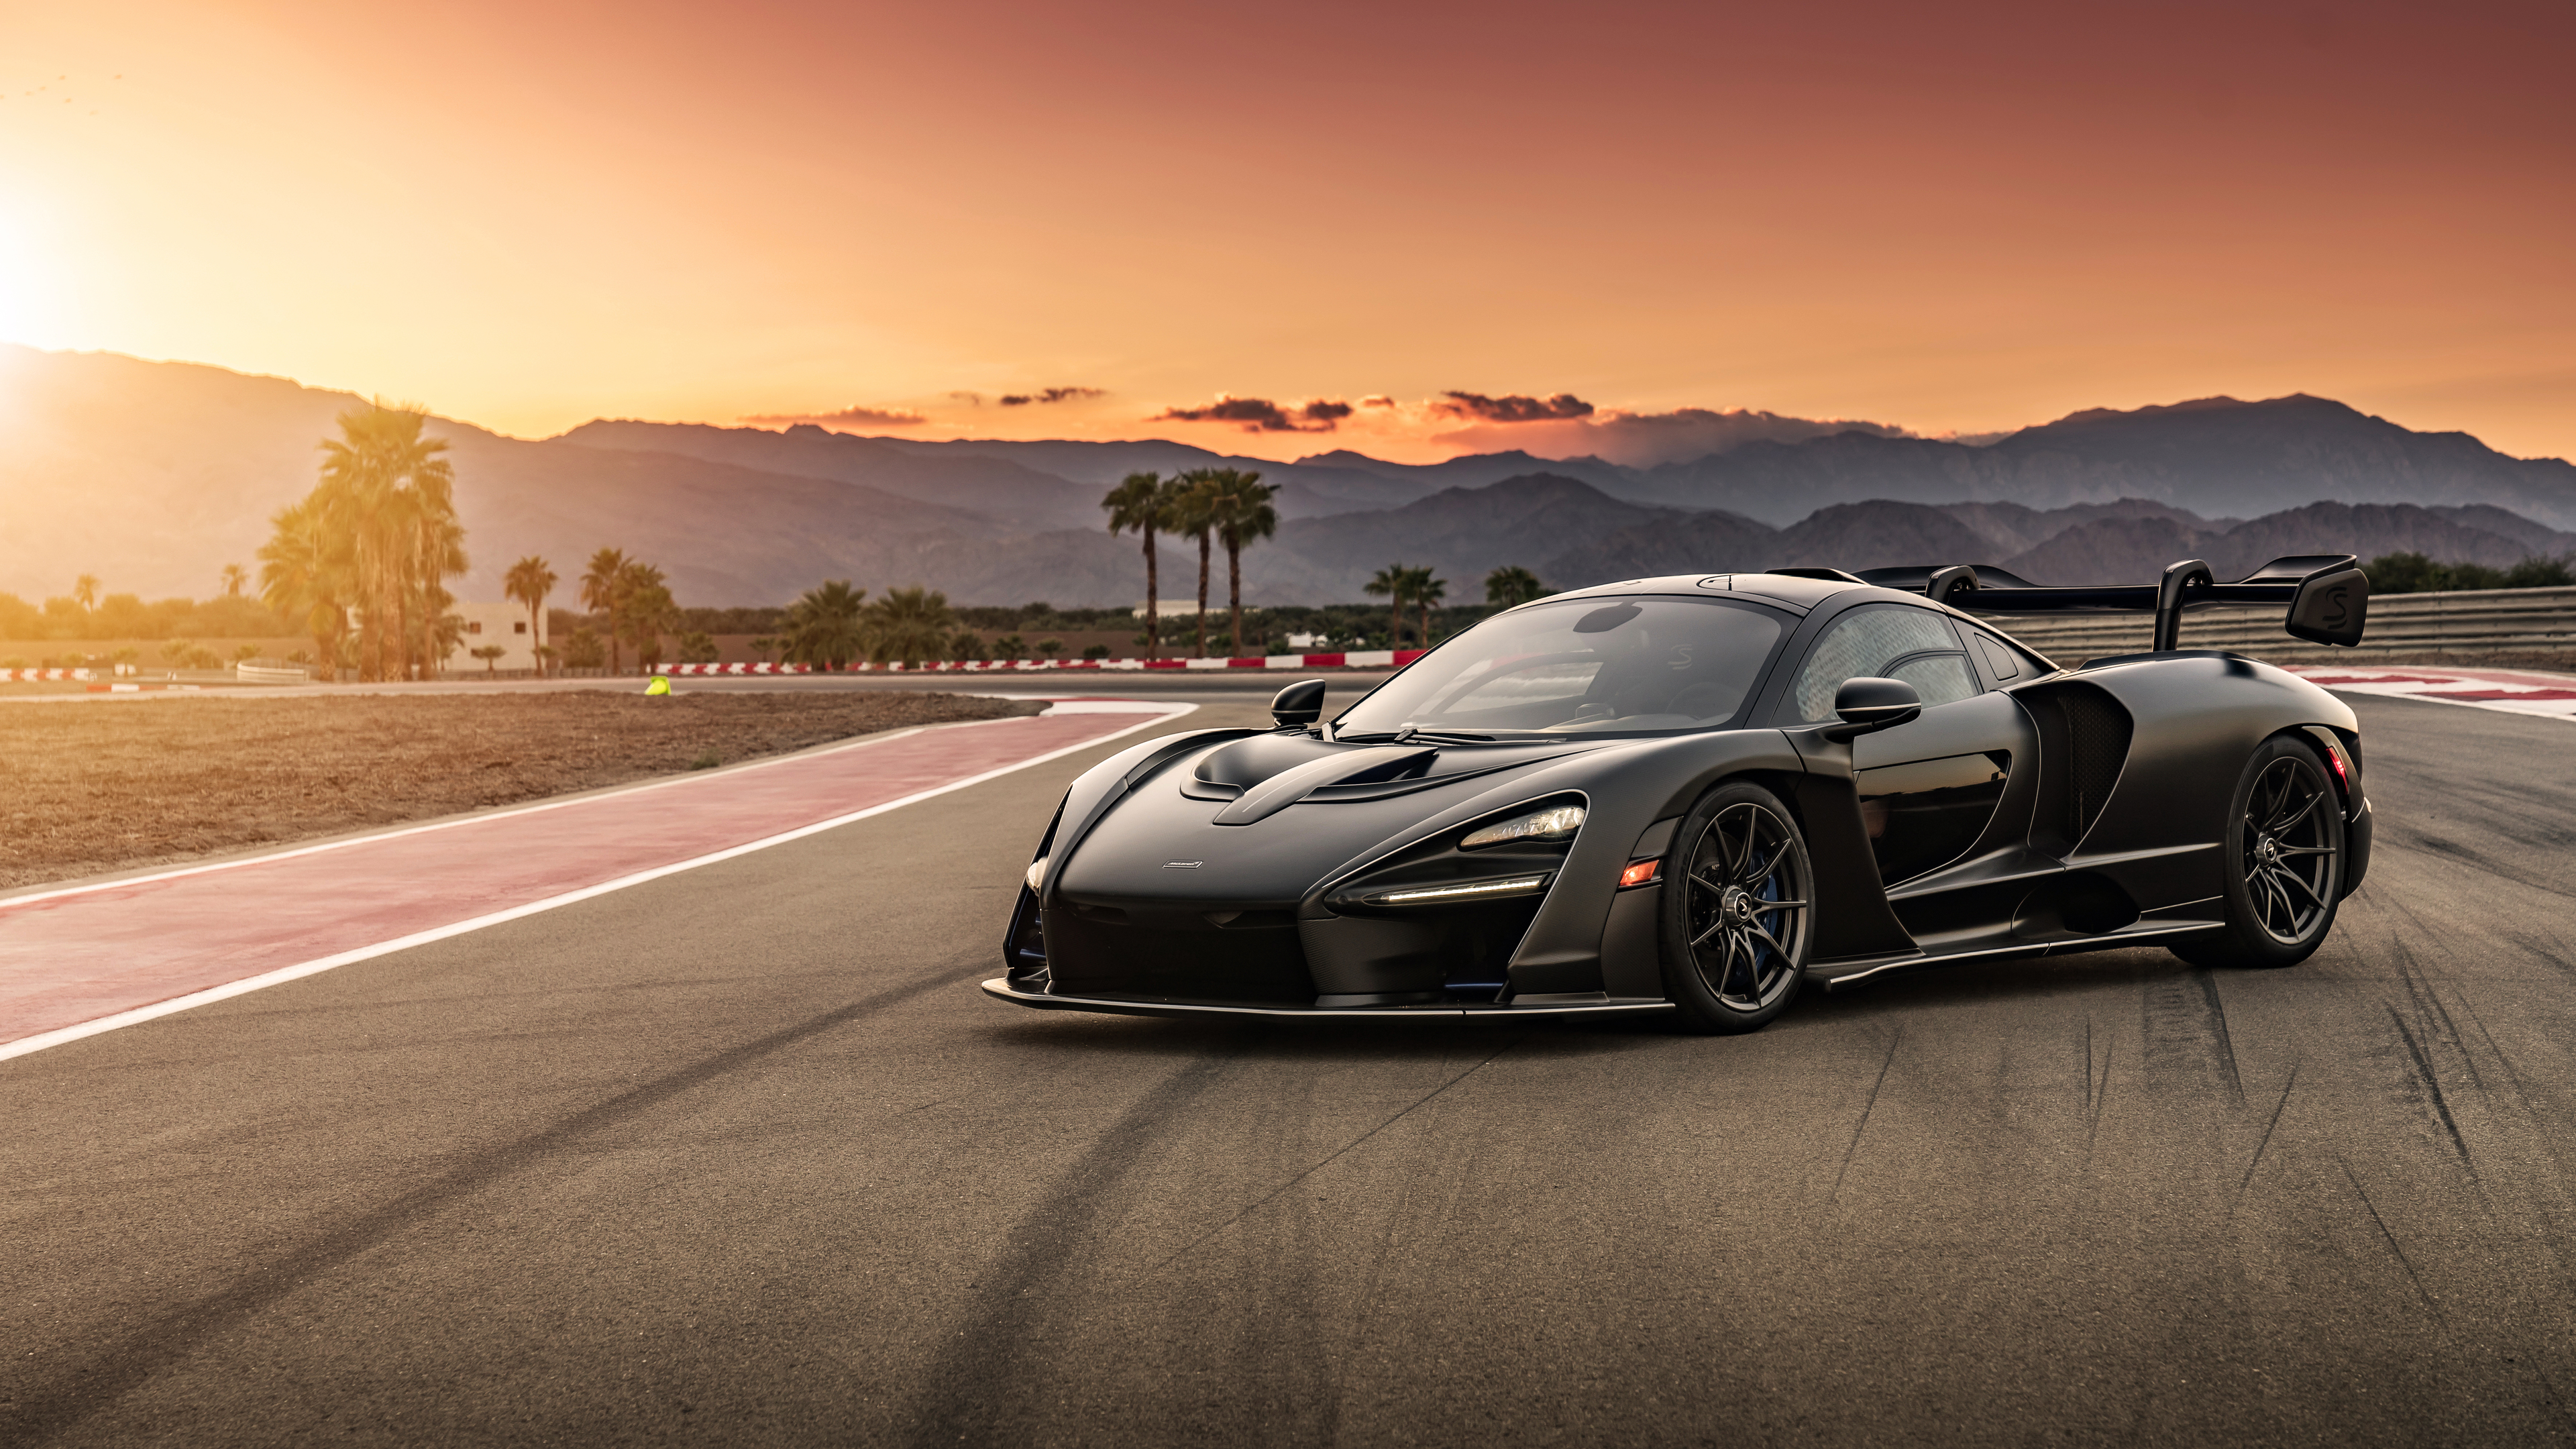 mclaren senna 4k 1547936923 - Mclaren Senna 4k - mclaren wallpapers, mclaren senna wallpapers, hd-wallpapers, cars wallpapers, 8k wallpapers, 5k wallpapers, 4k-wallpapers, 2019 cars wallpapers